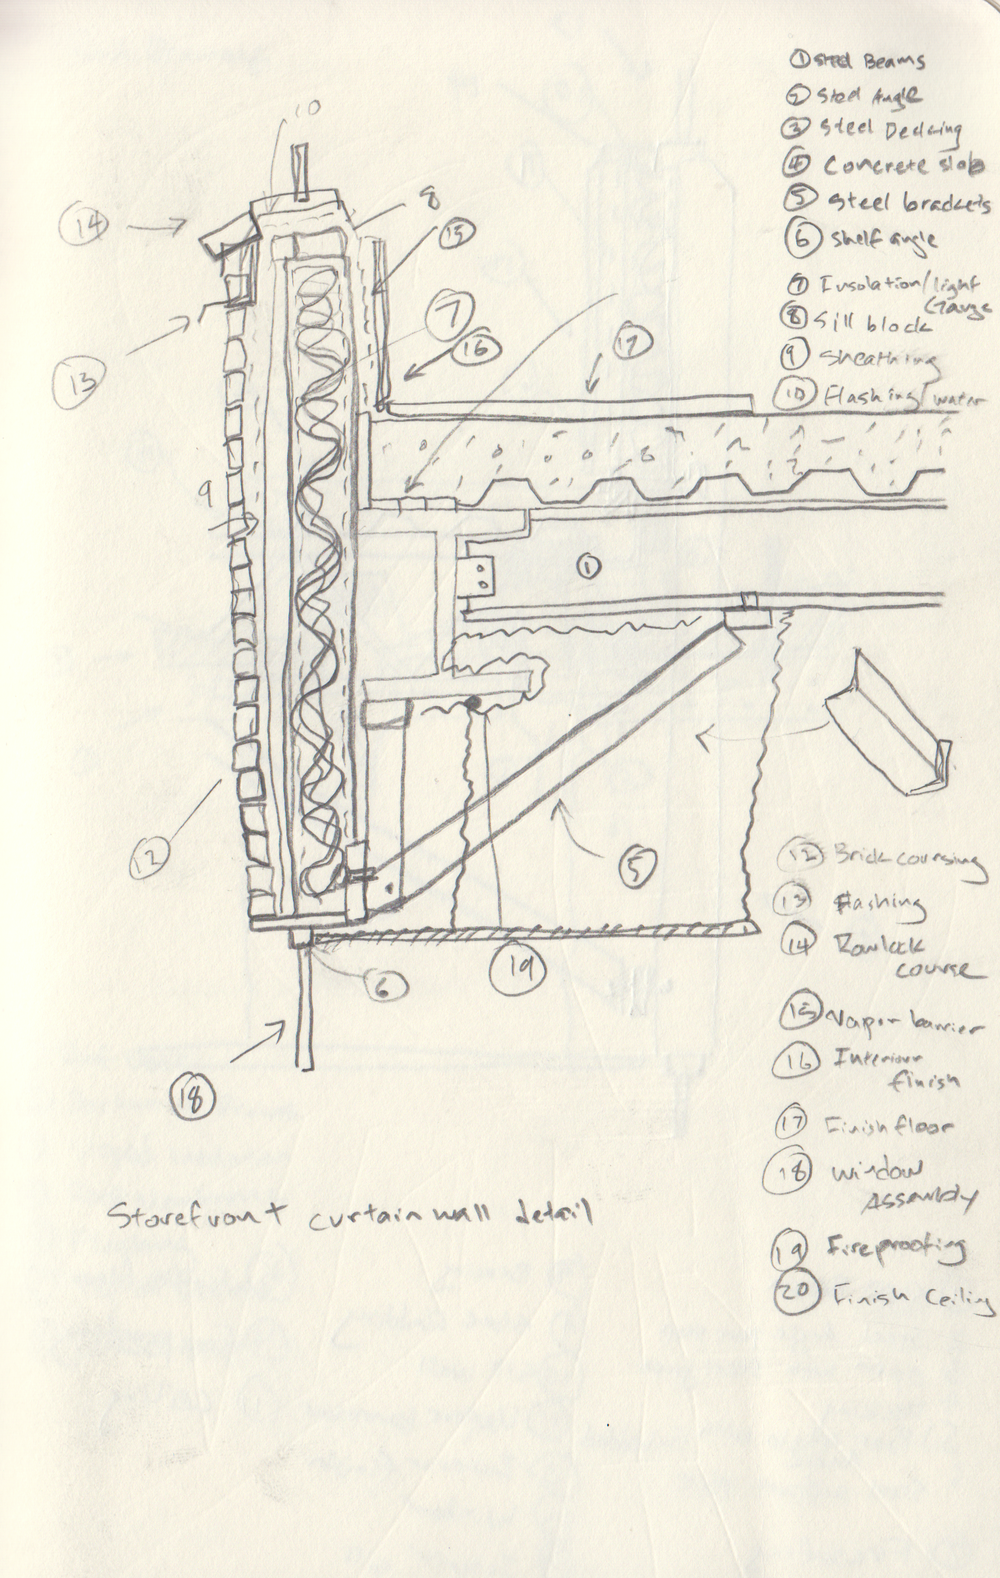 Curtain Wall Building Assembly Detail